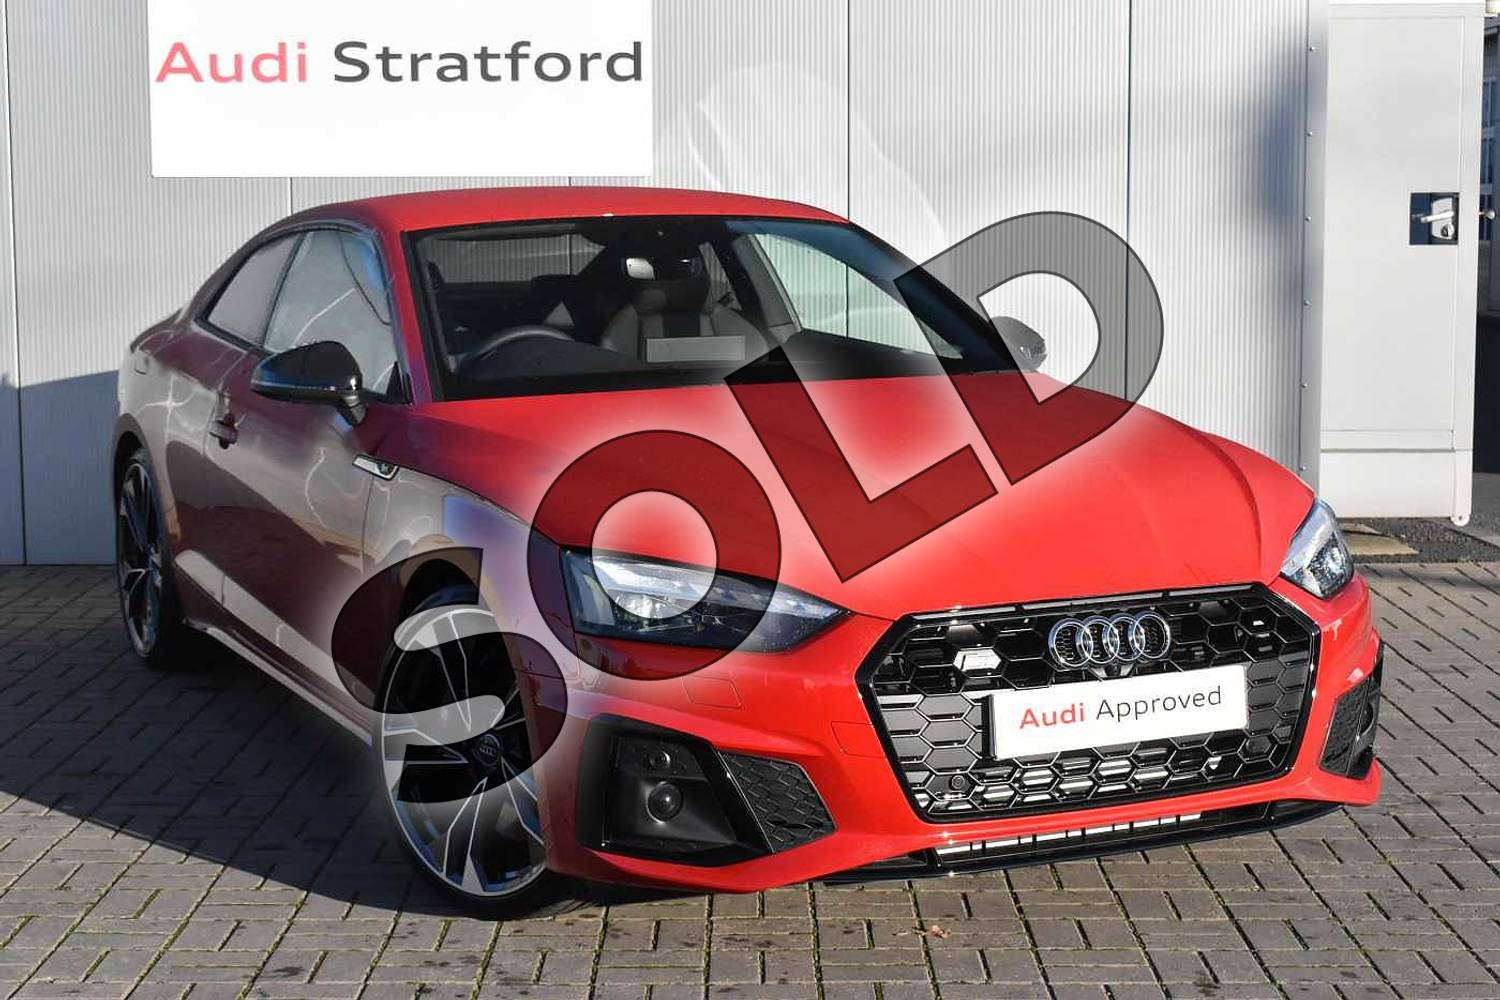 2020 Audi A5 Coupe Special Editions S5 TDI Quattro Edition 1 2dr Tiptronic in Tango Red Metallic at Stratford Audi